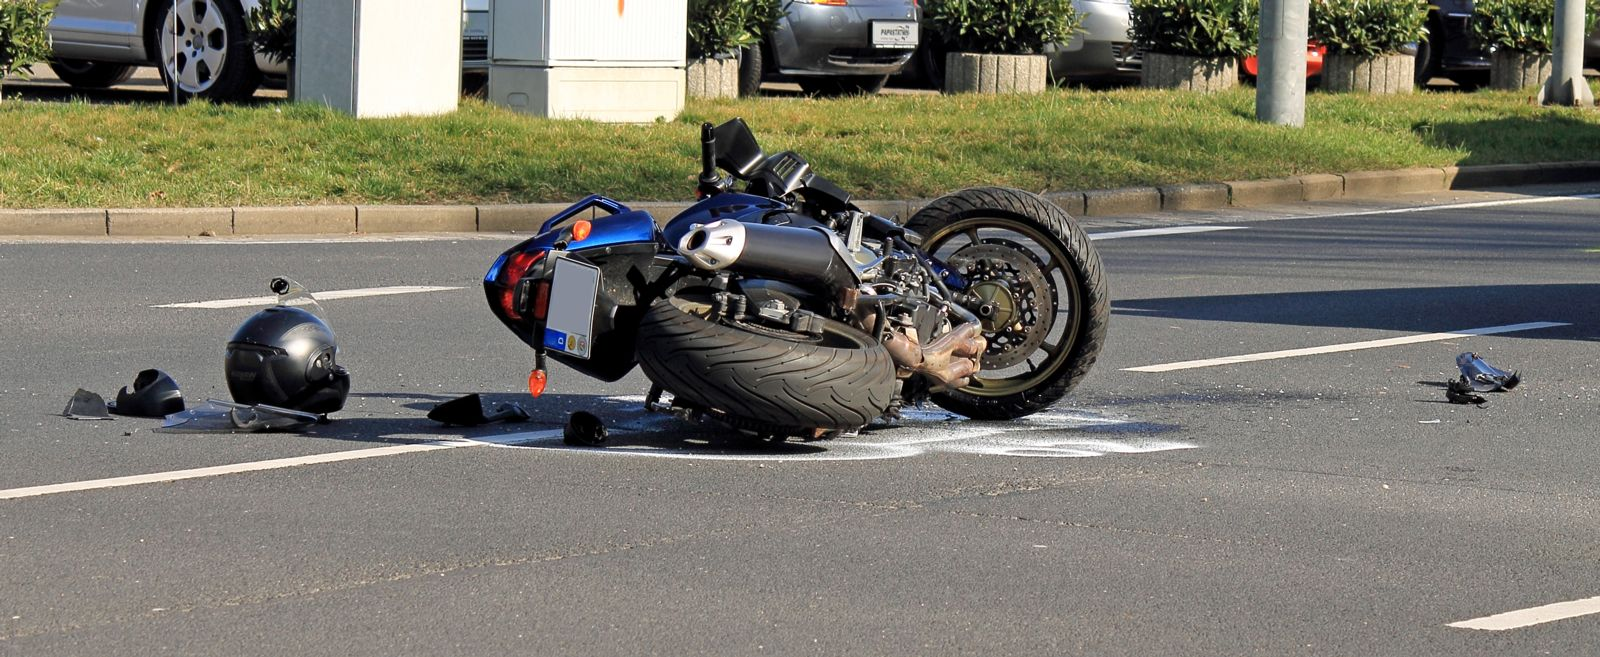 https://dss.fosterwebmarketing.com/upload/maxmeyerslaw.com/Motorcycle-Accident.jpeg